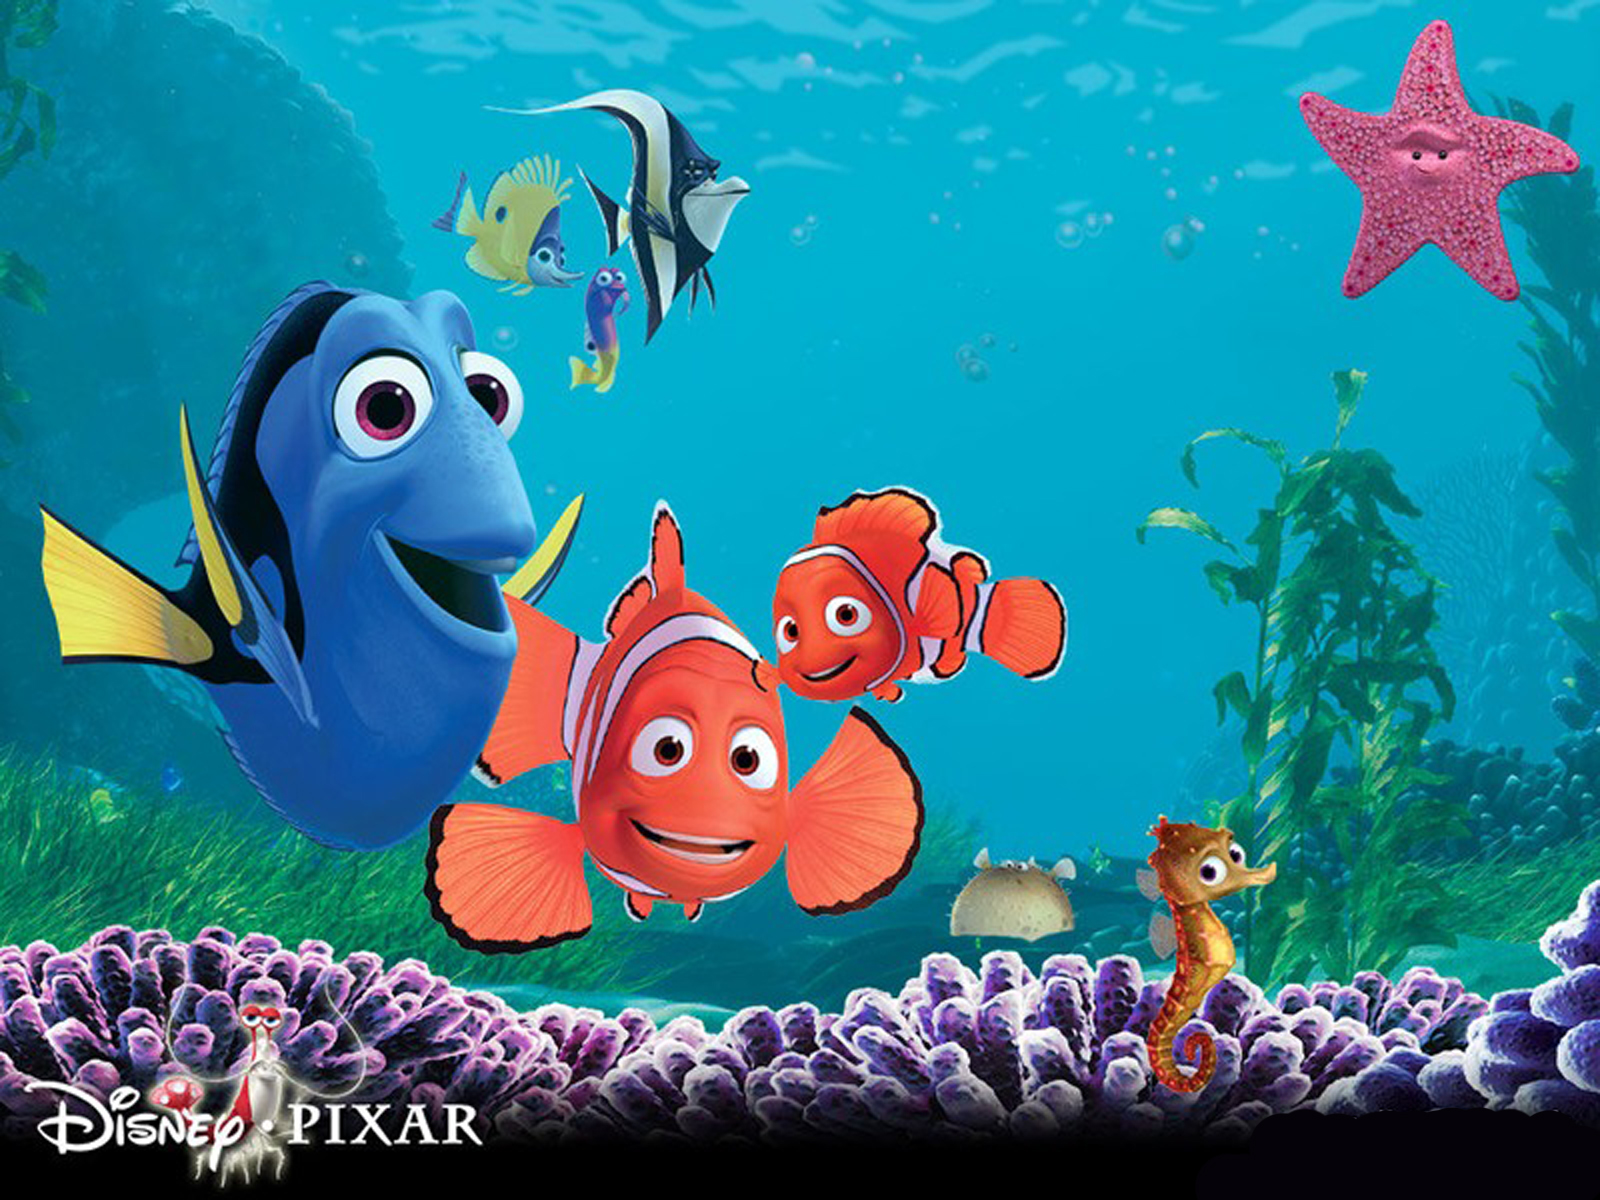 Central Wallpaper Finding Nemo 3D Movie Poster HD Wallpapers 1600x1200